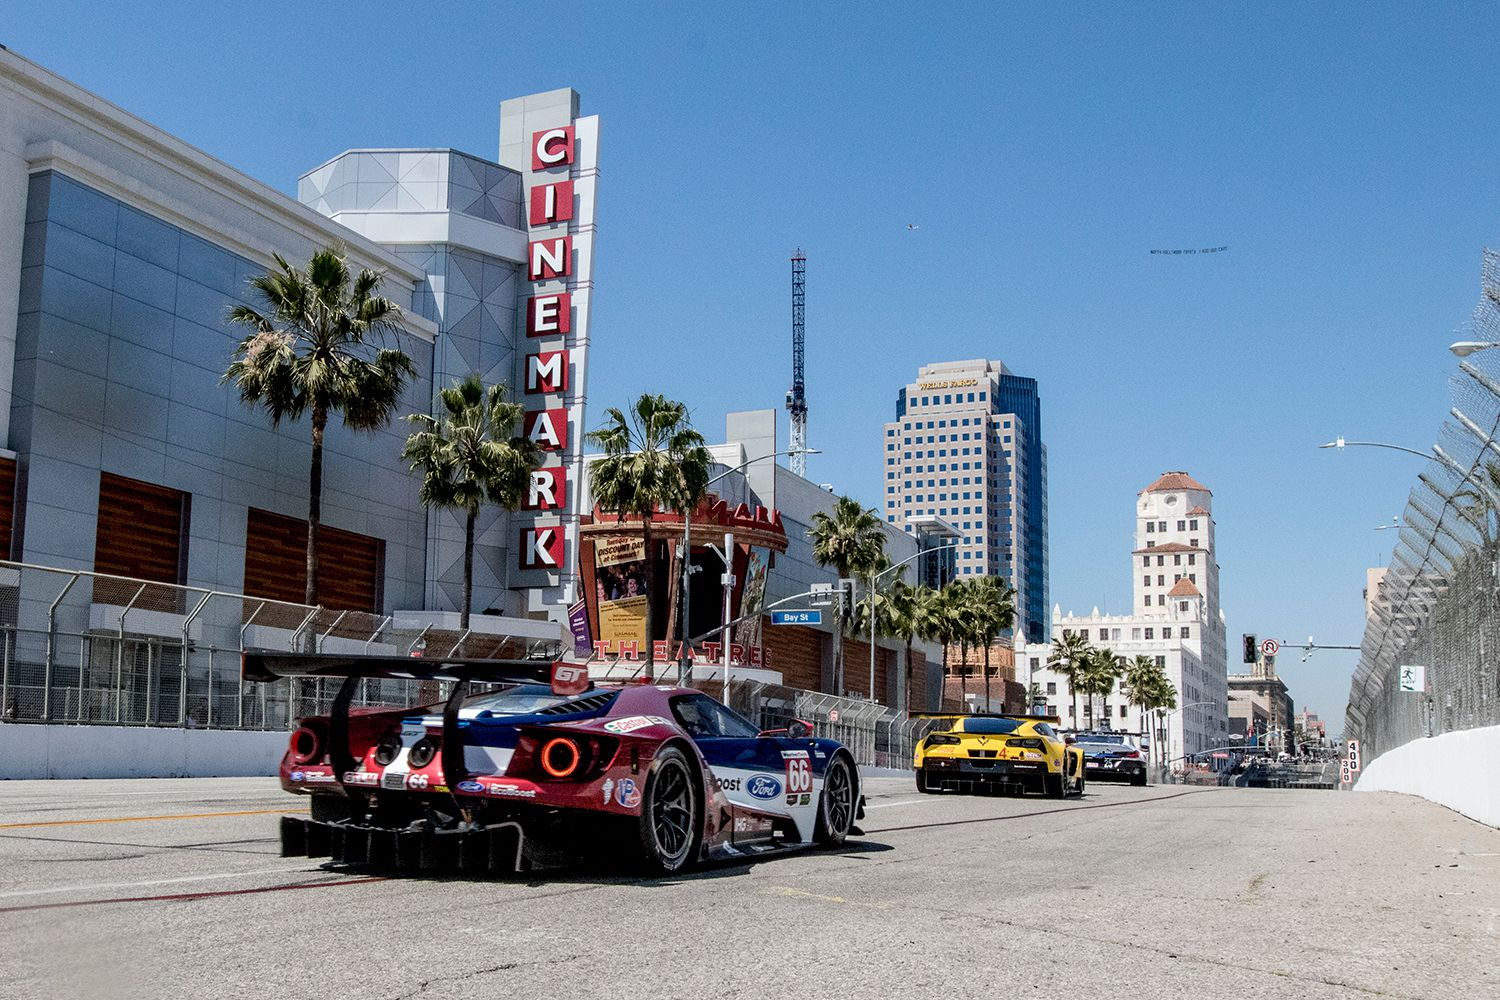 The Best Things To Do In Long Beach California